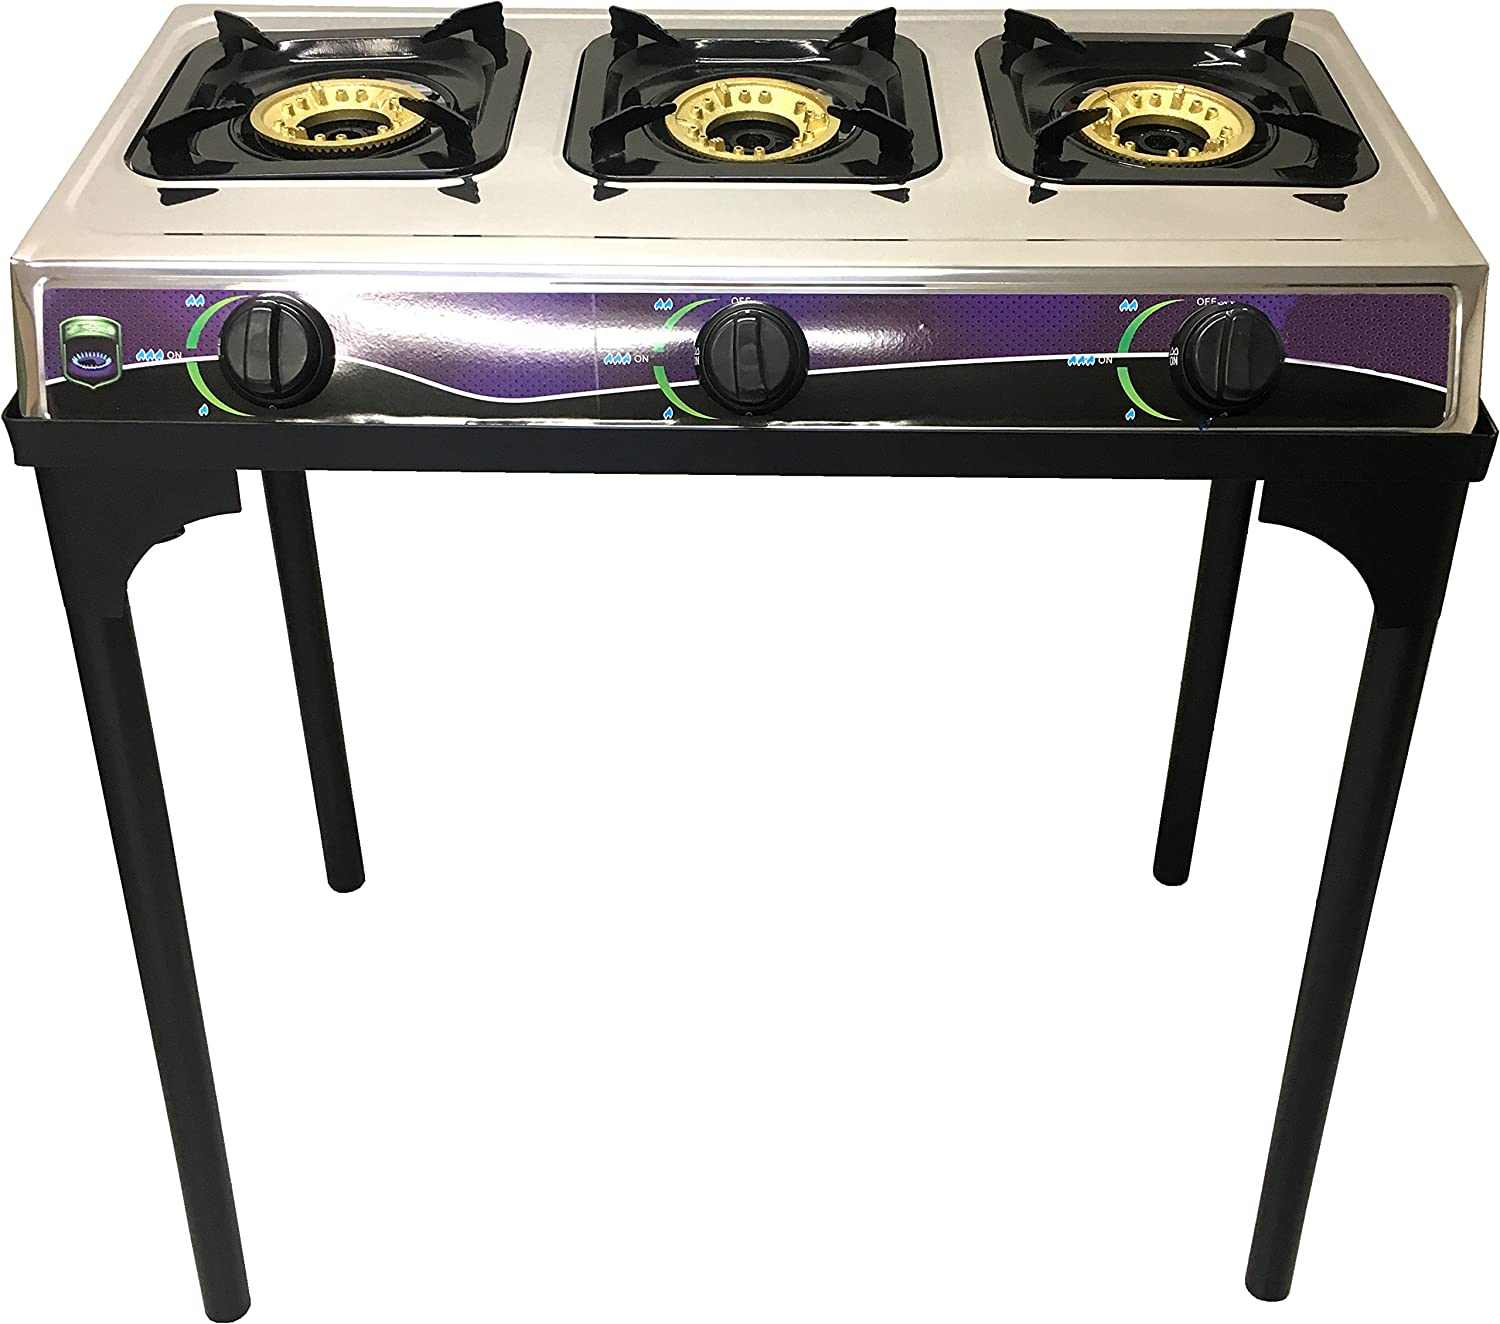 #1 Heavy Duty Three Burner Propane Gas Stove Outdoor Cooking Butane Gas Stove Full Stainless Steel Body Electronic Ignition Available without or with Black Metal Stand (THREE BURNER STOVE WITH STAND) Unique Imports